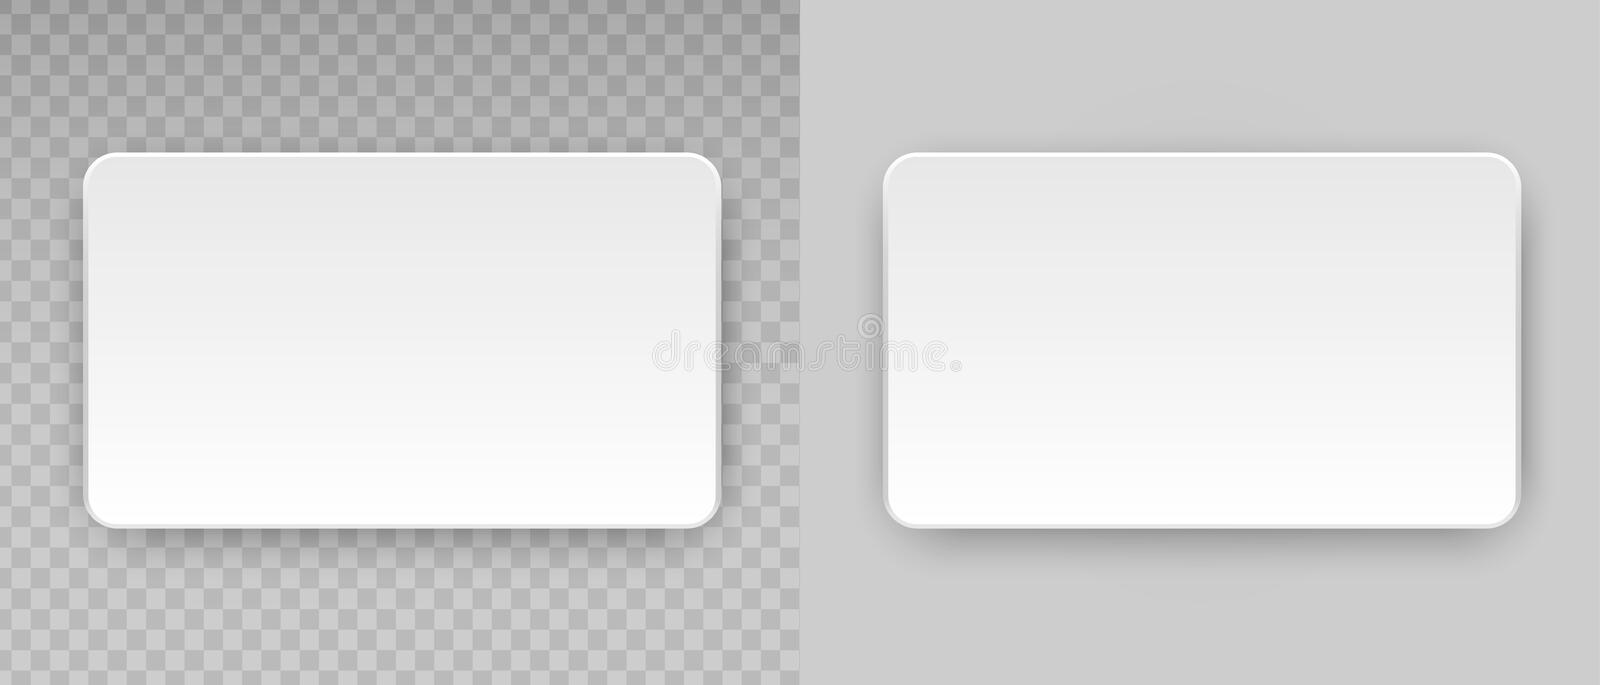 White Blank Horizontal Plastic Paper Business Card Or Name Credit